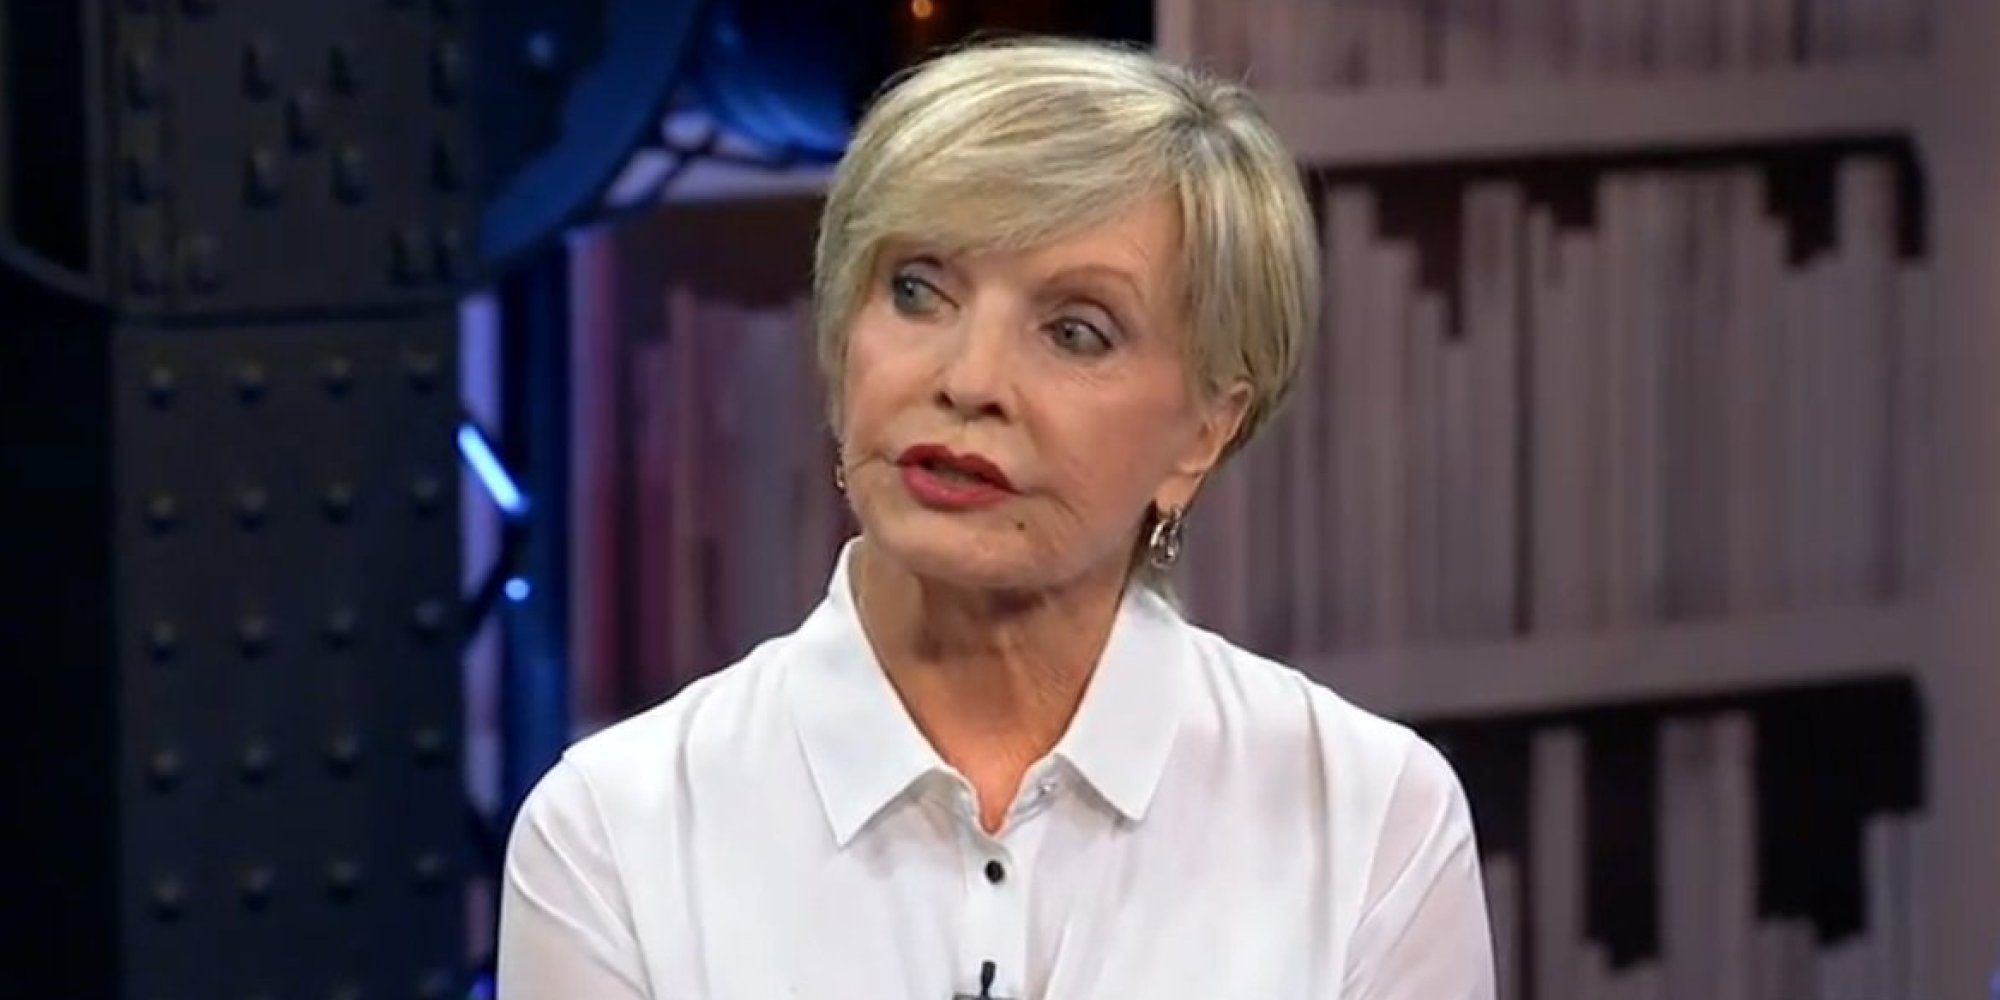 florence henderson imdbflorence henderson young, florence henderson died, florence henderson and barry williams, florence henderson brady bunch, florence henderson today, florence henderson net worth, florence henderson imdb, florence henderson affair, florence henderson feet, florence henderson biography, florence henderson hot, florence henderson crabs, florence henderson dancing with the stars, florence henderson show, florence henderson and greg brady, florence henderson and peter brady, florence henderson plastic surgery